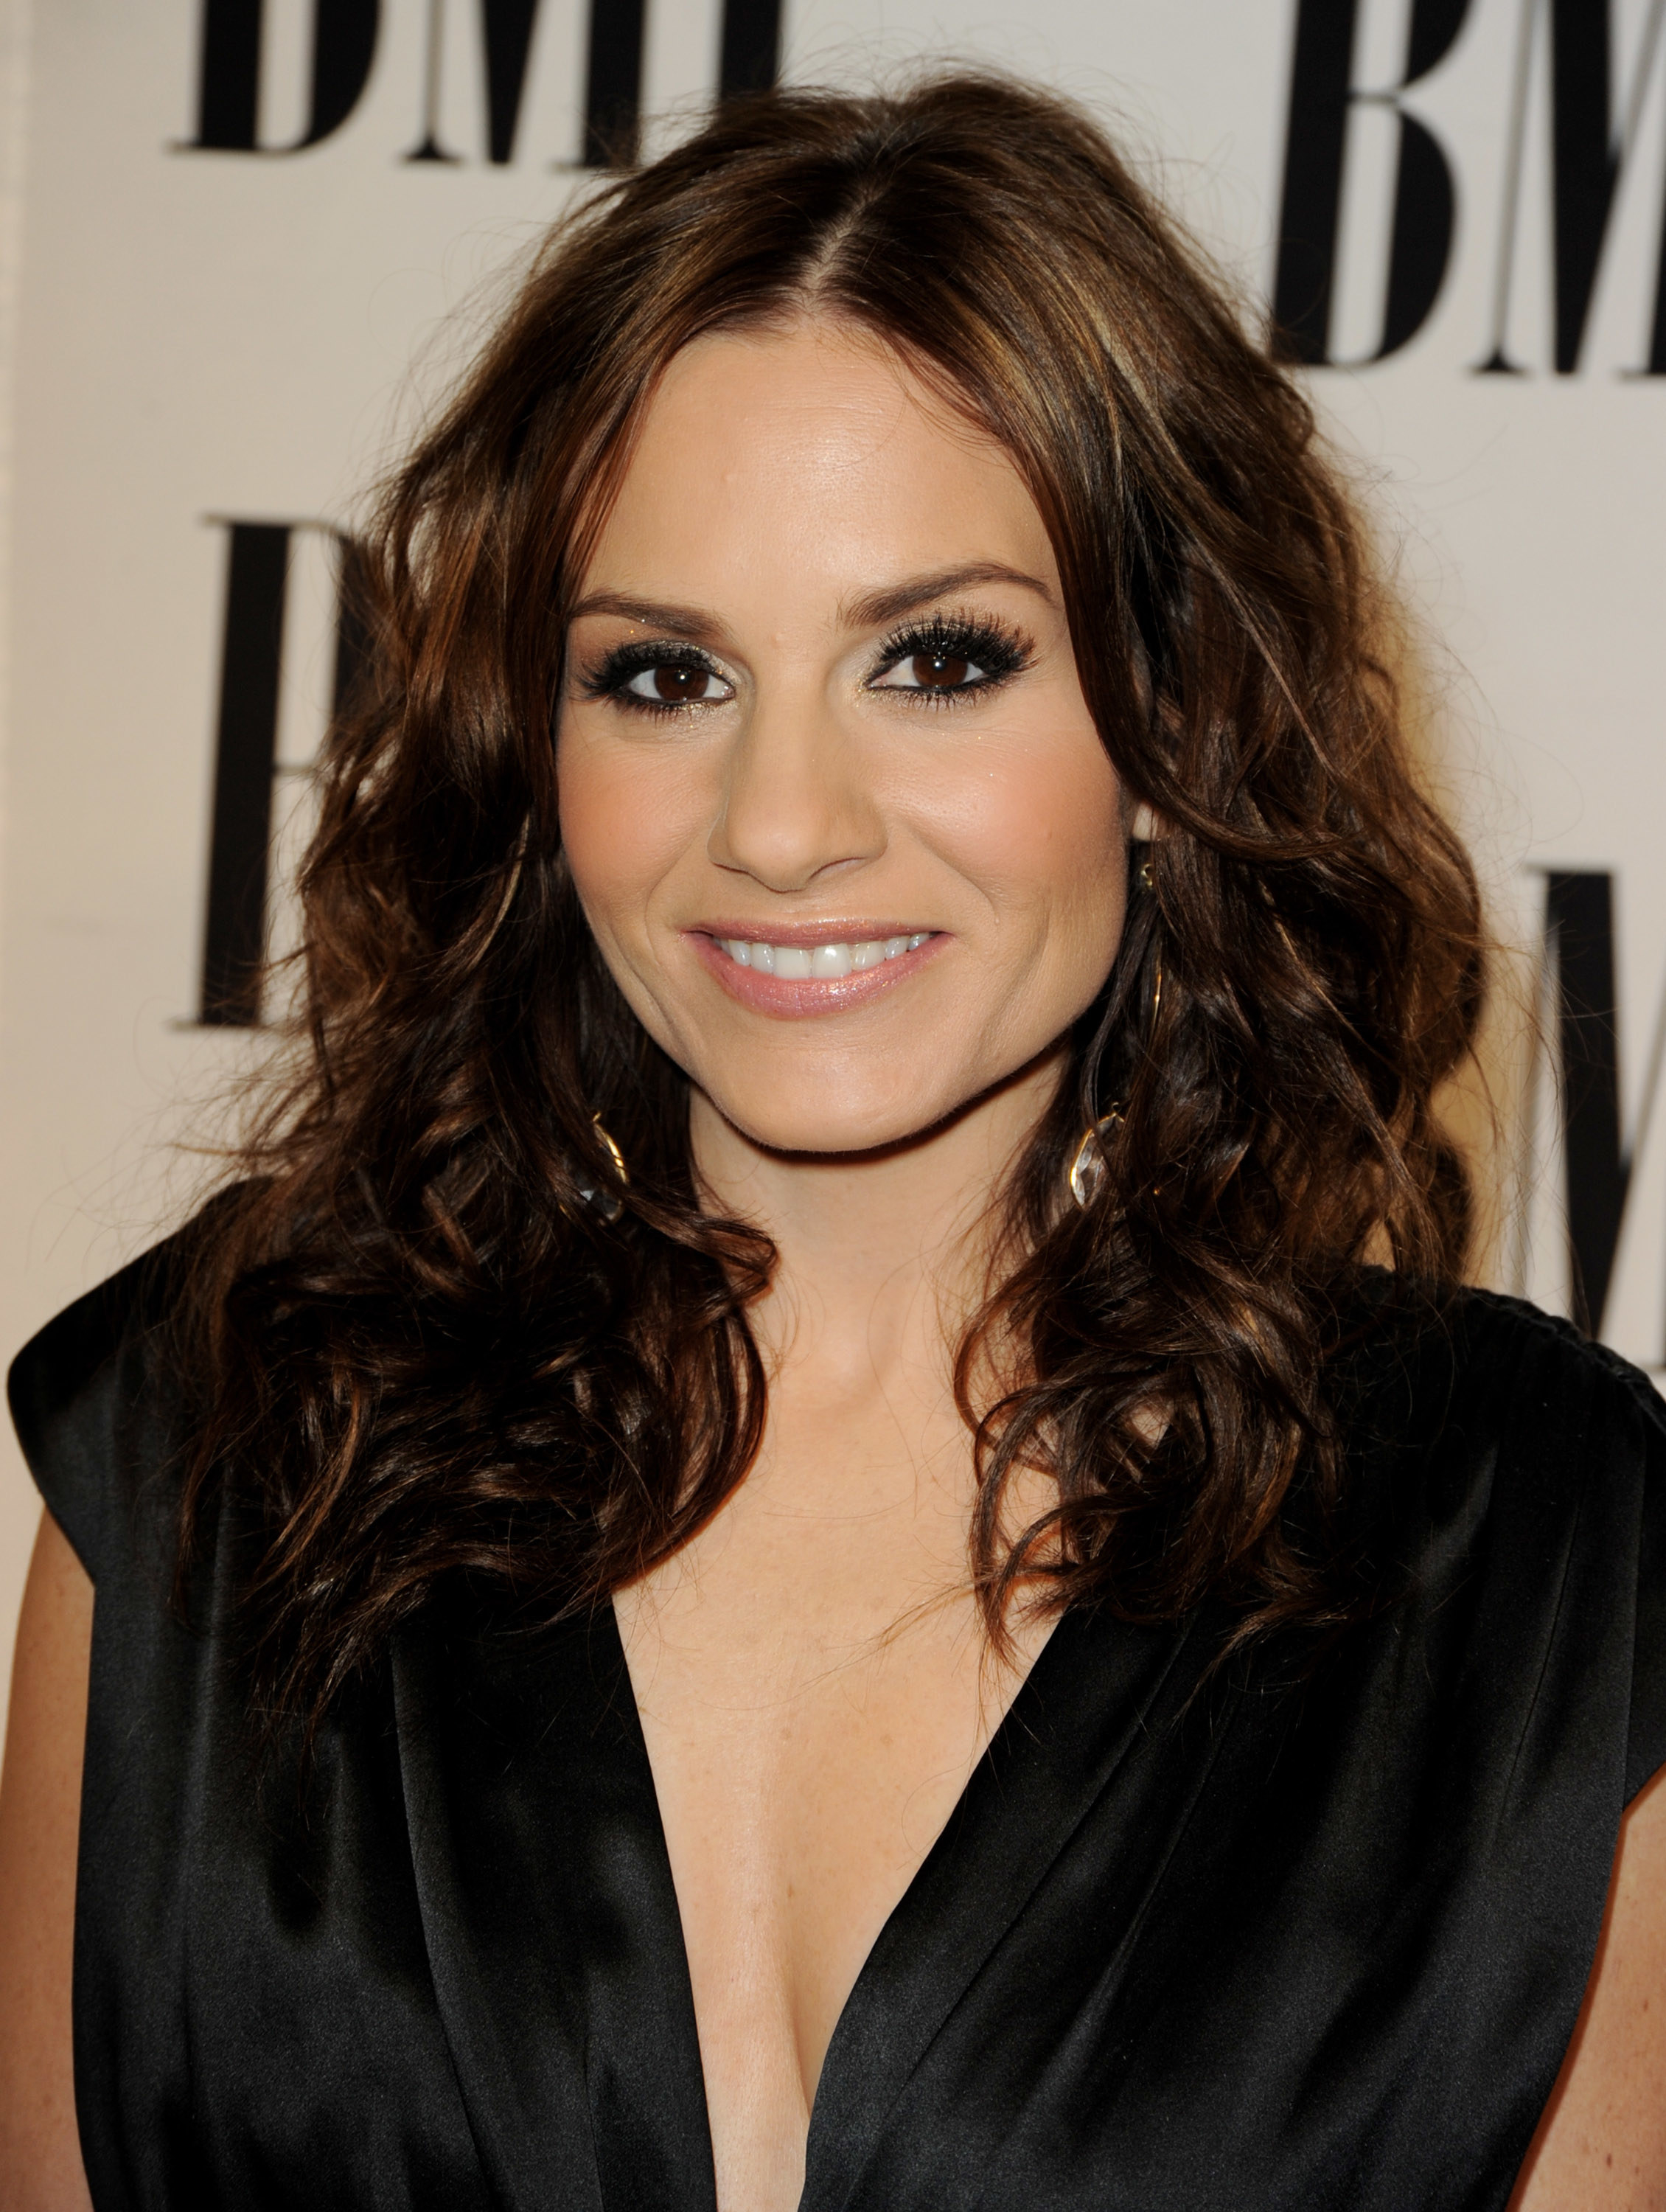 A close-up of Kara DioGuardi at an event for BMI